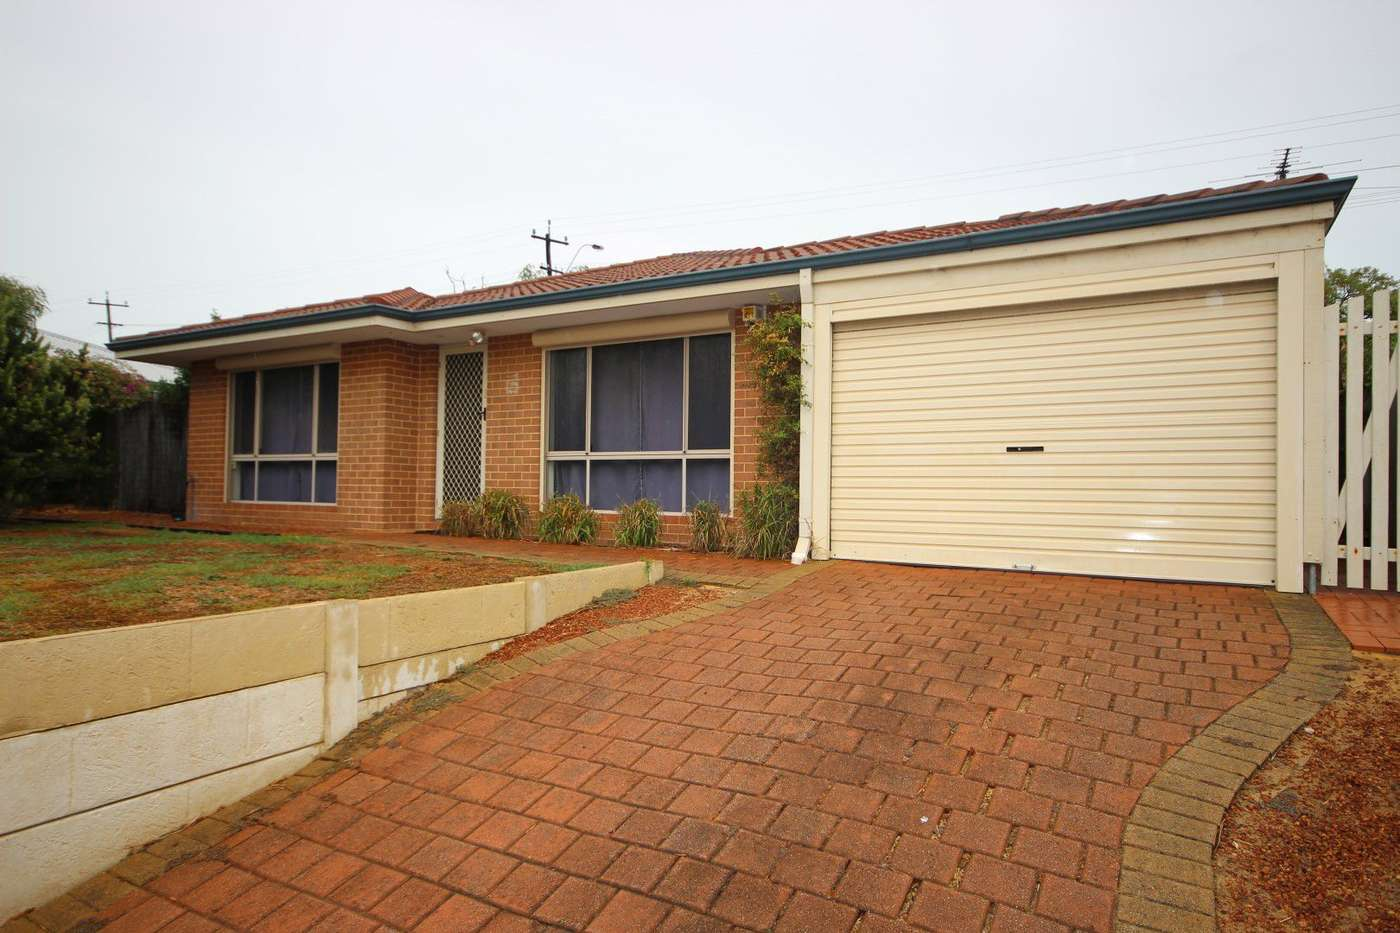 Main view of Homely house listing, 11 Truslove Close, Willagee, WA 6156